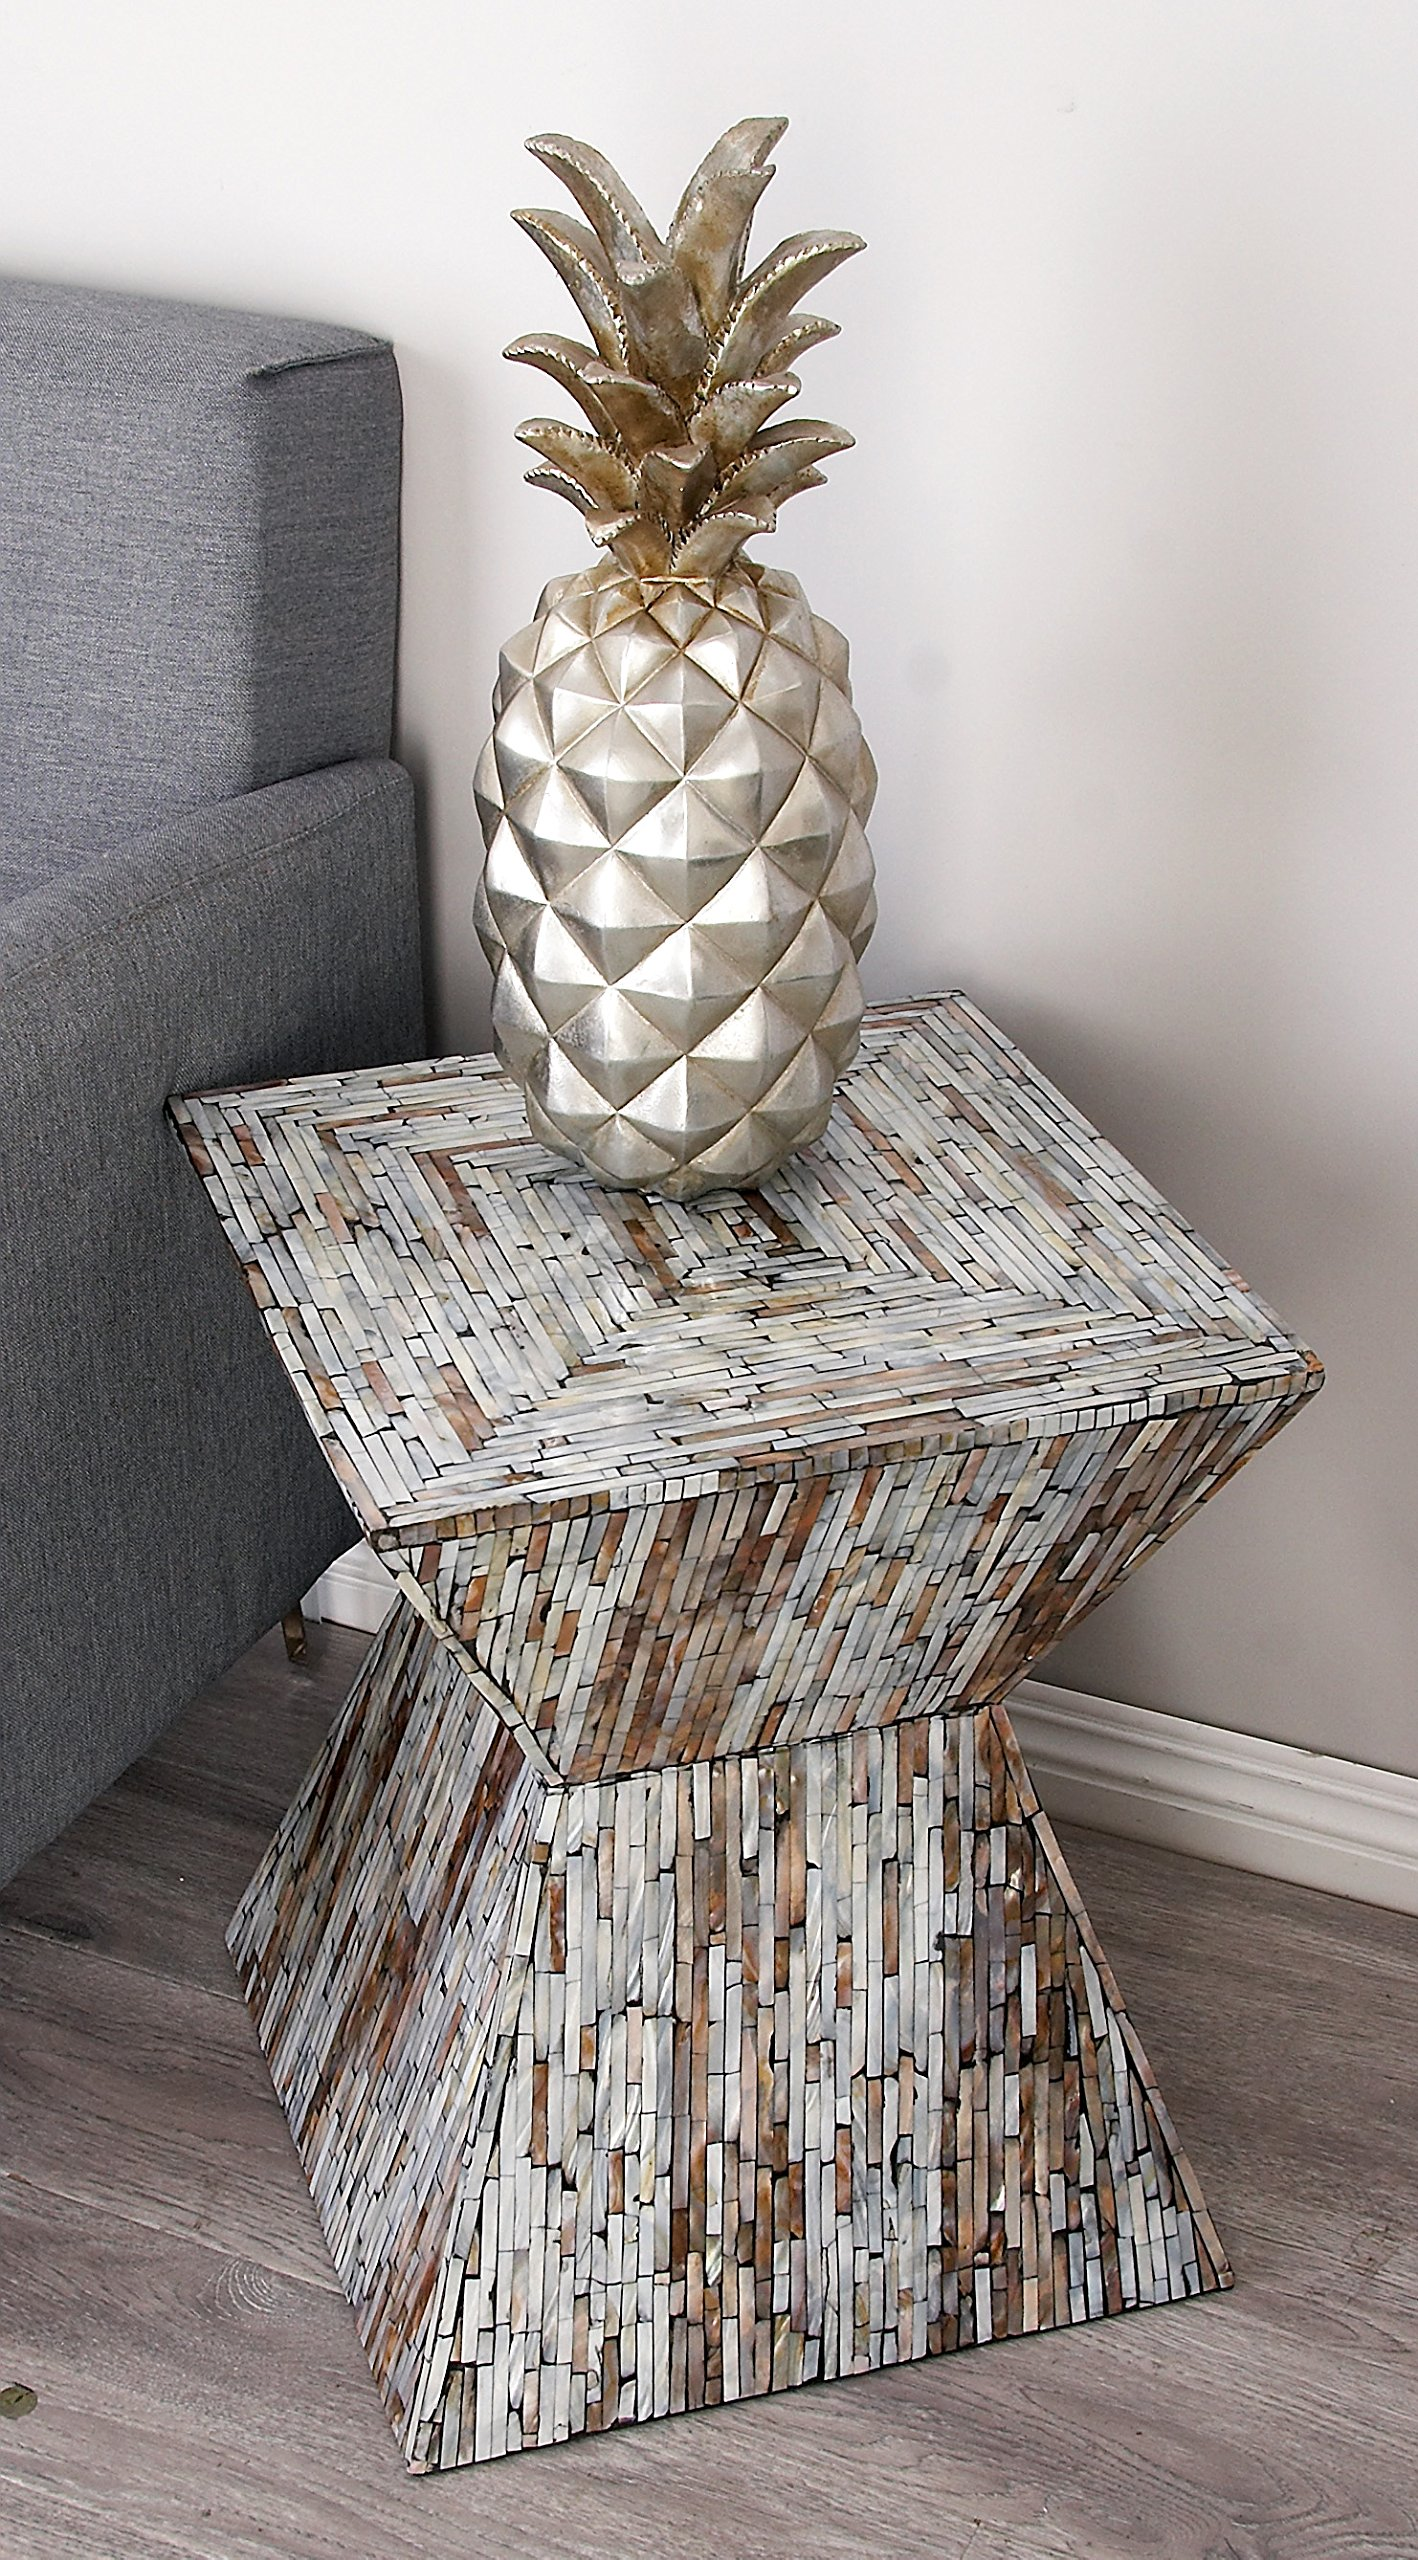 Deco 79 49092 Wood Inlay Accent Table, 16'' x 19'' by Deco 79 (Image #3)